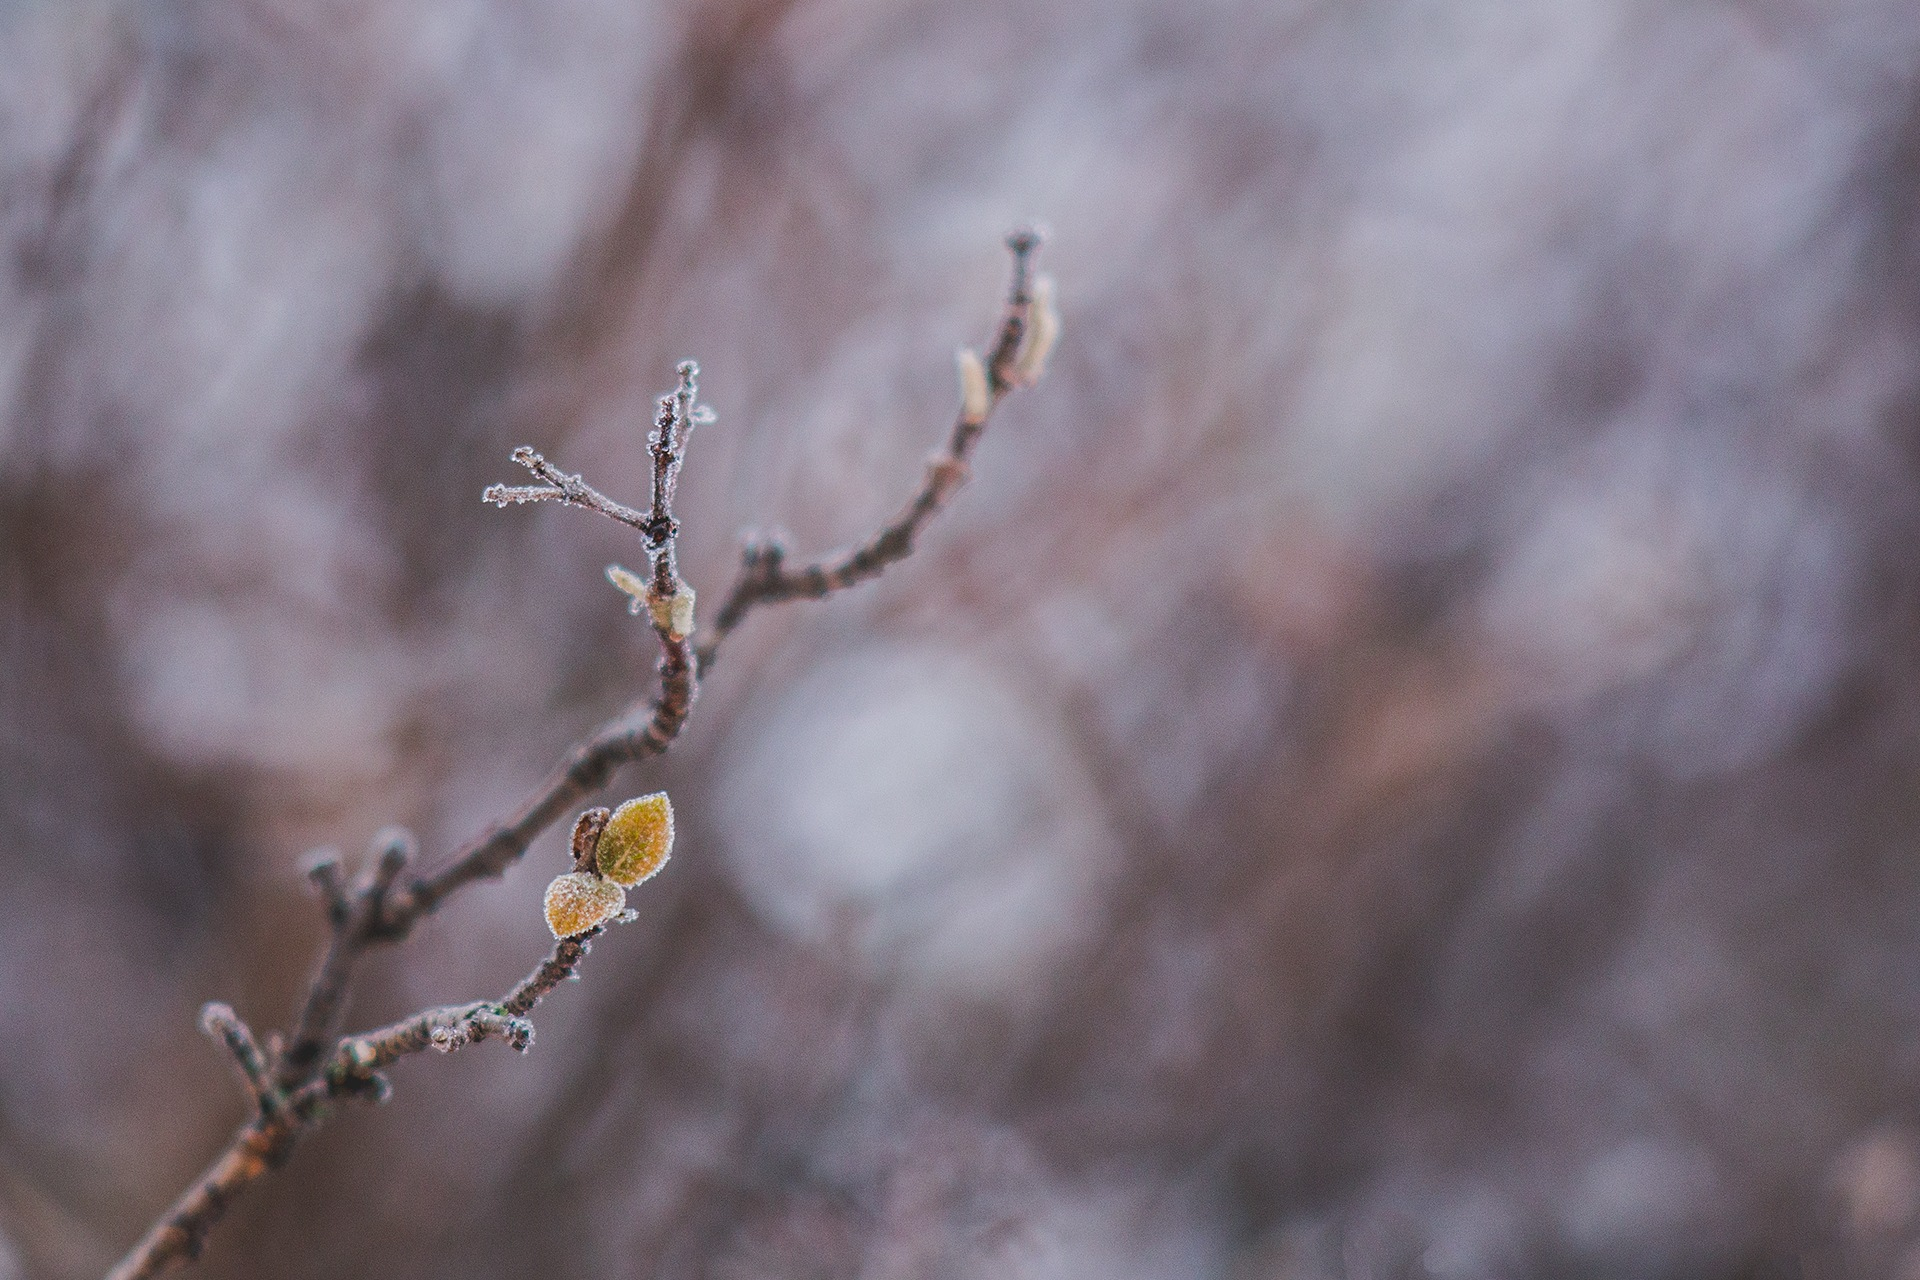 Frozen nature by Tom Photo